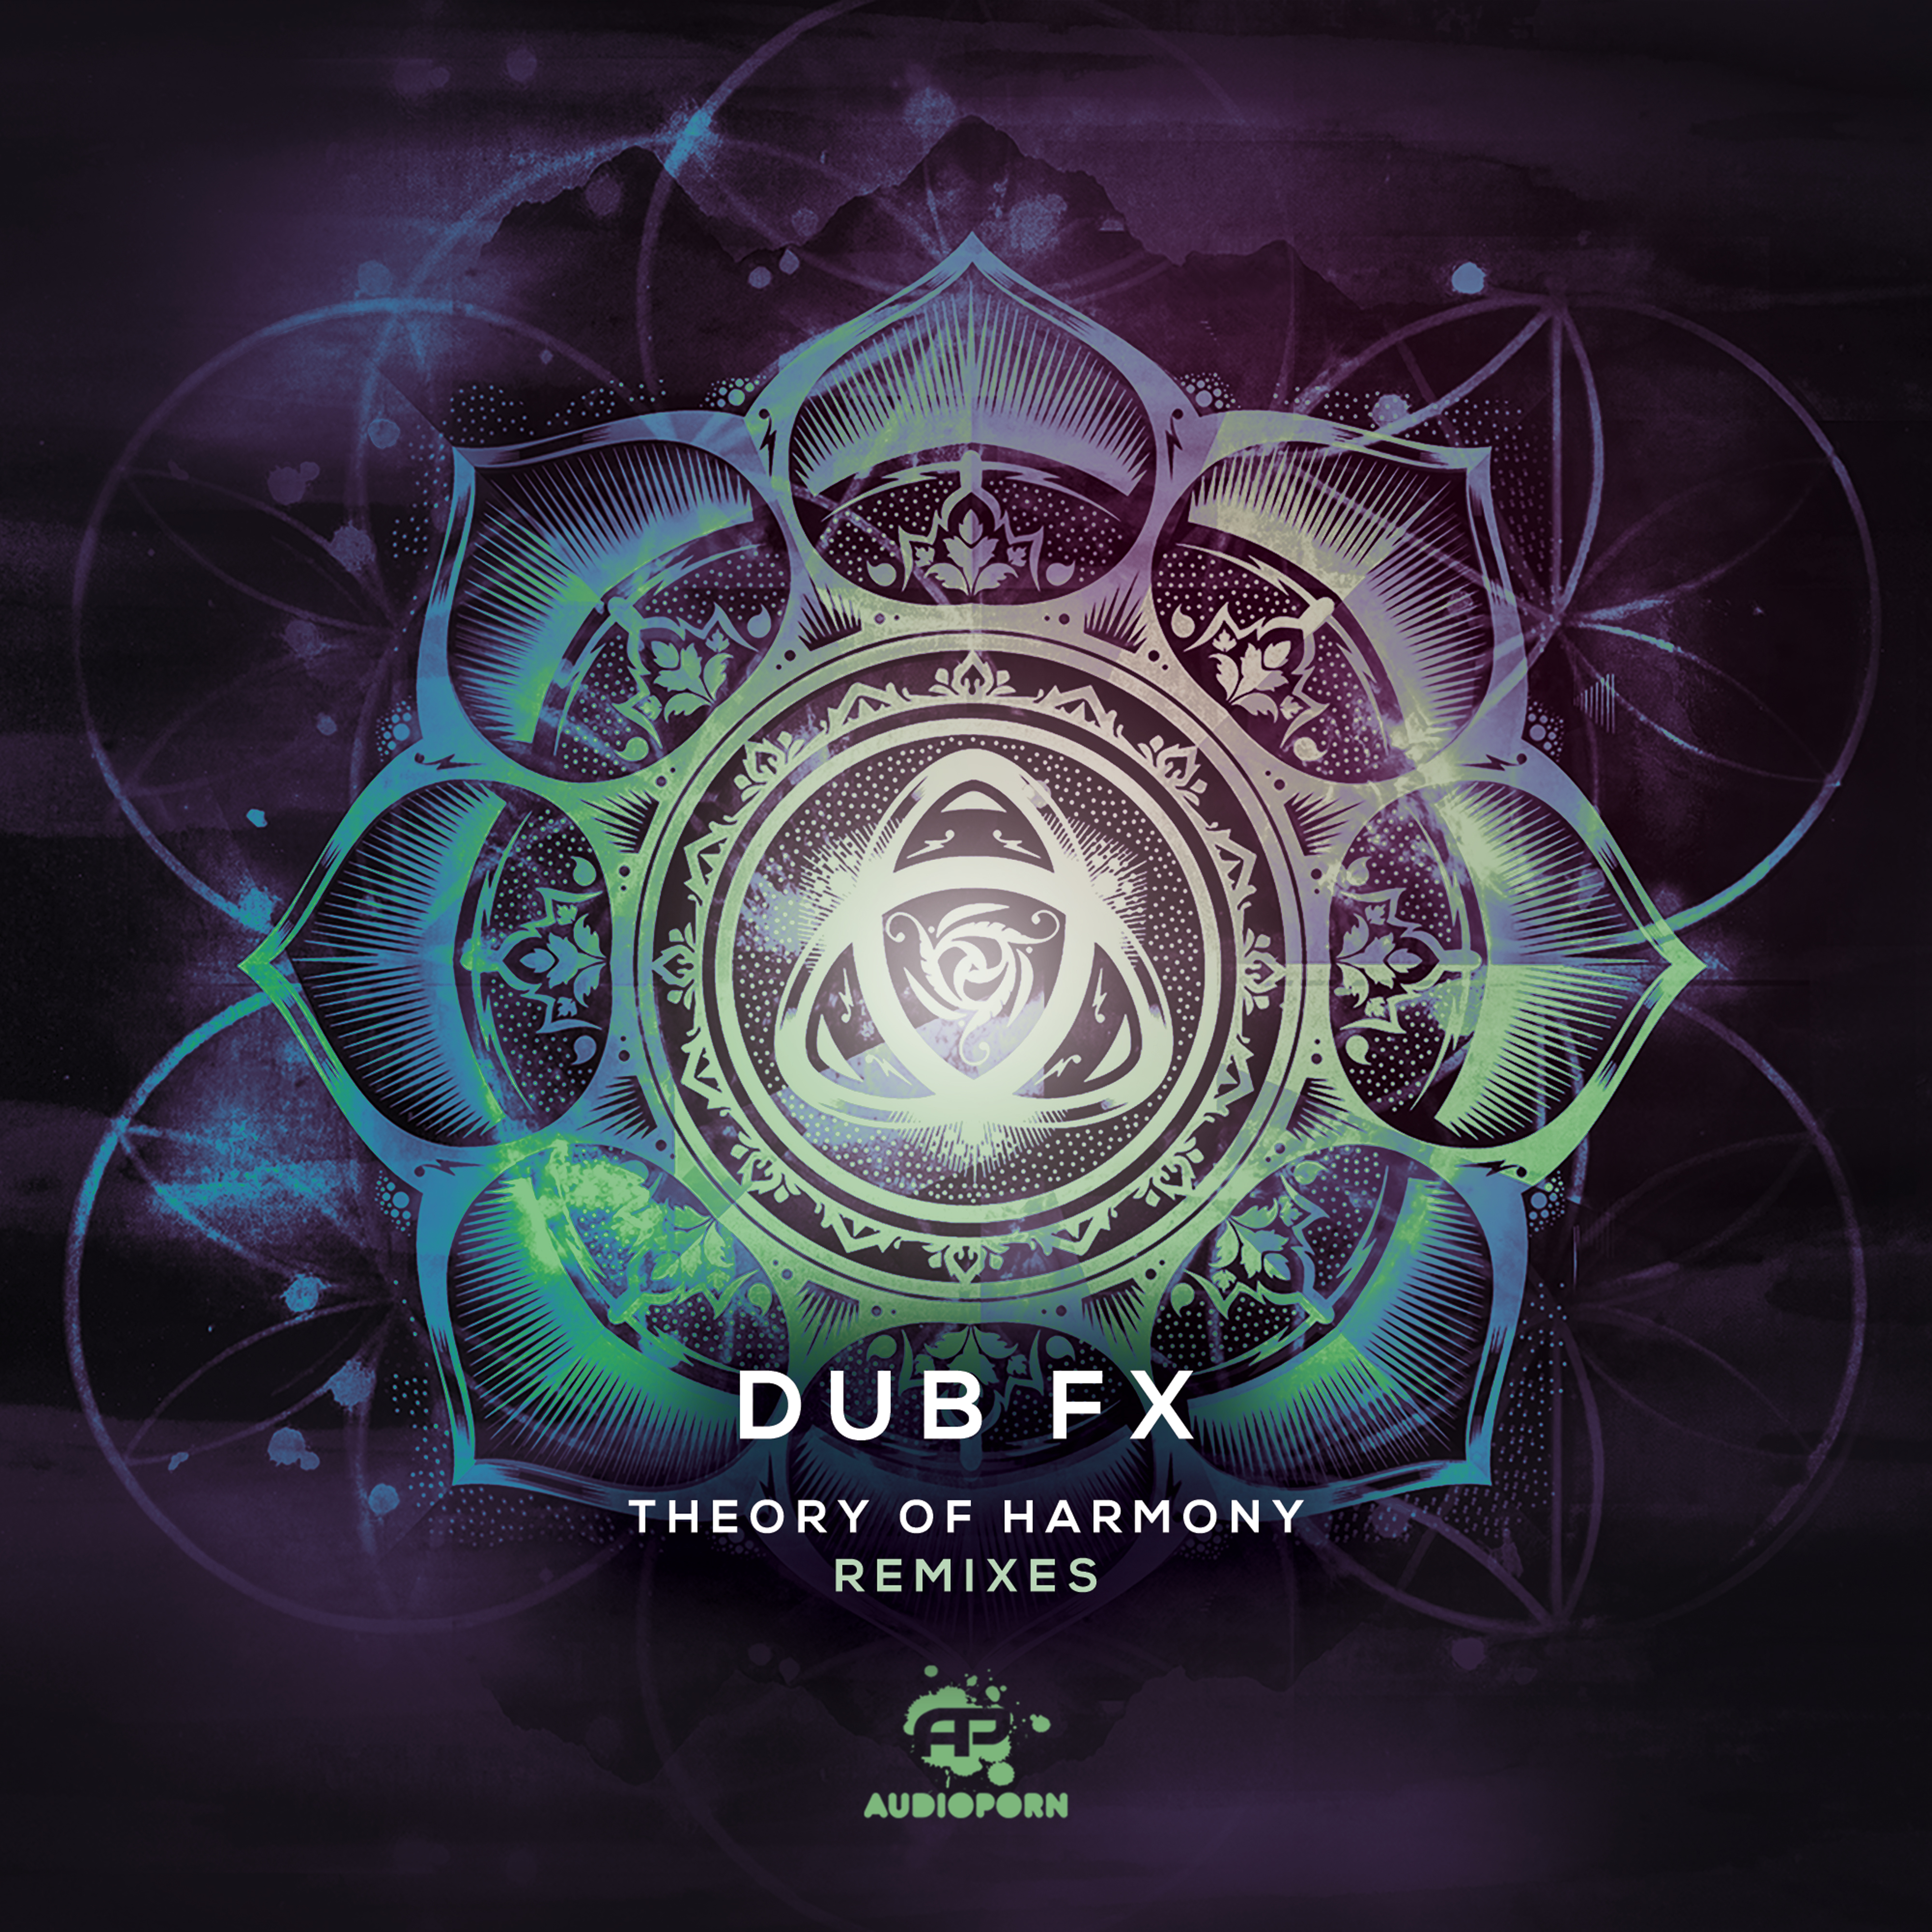 Dub FX - 'Theory Of Harmony Remixes LP' [APORN0LP003]